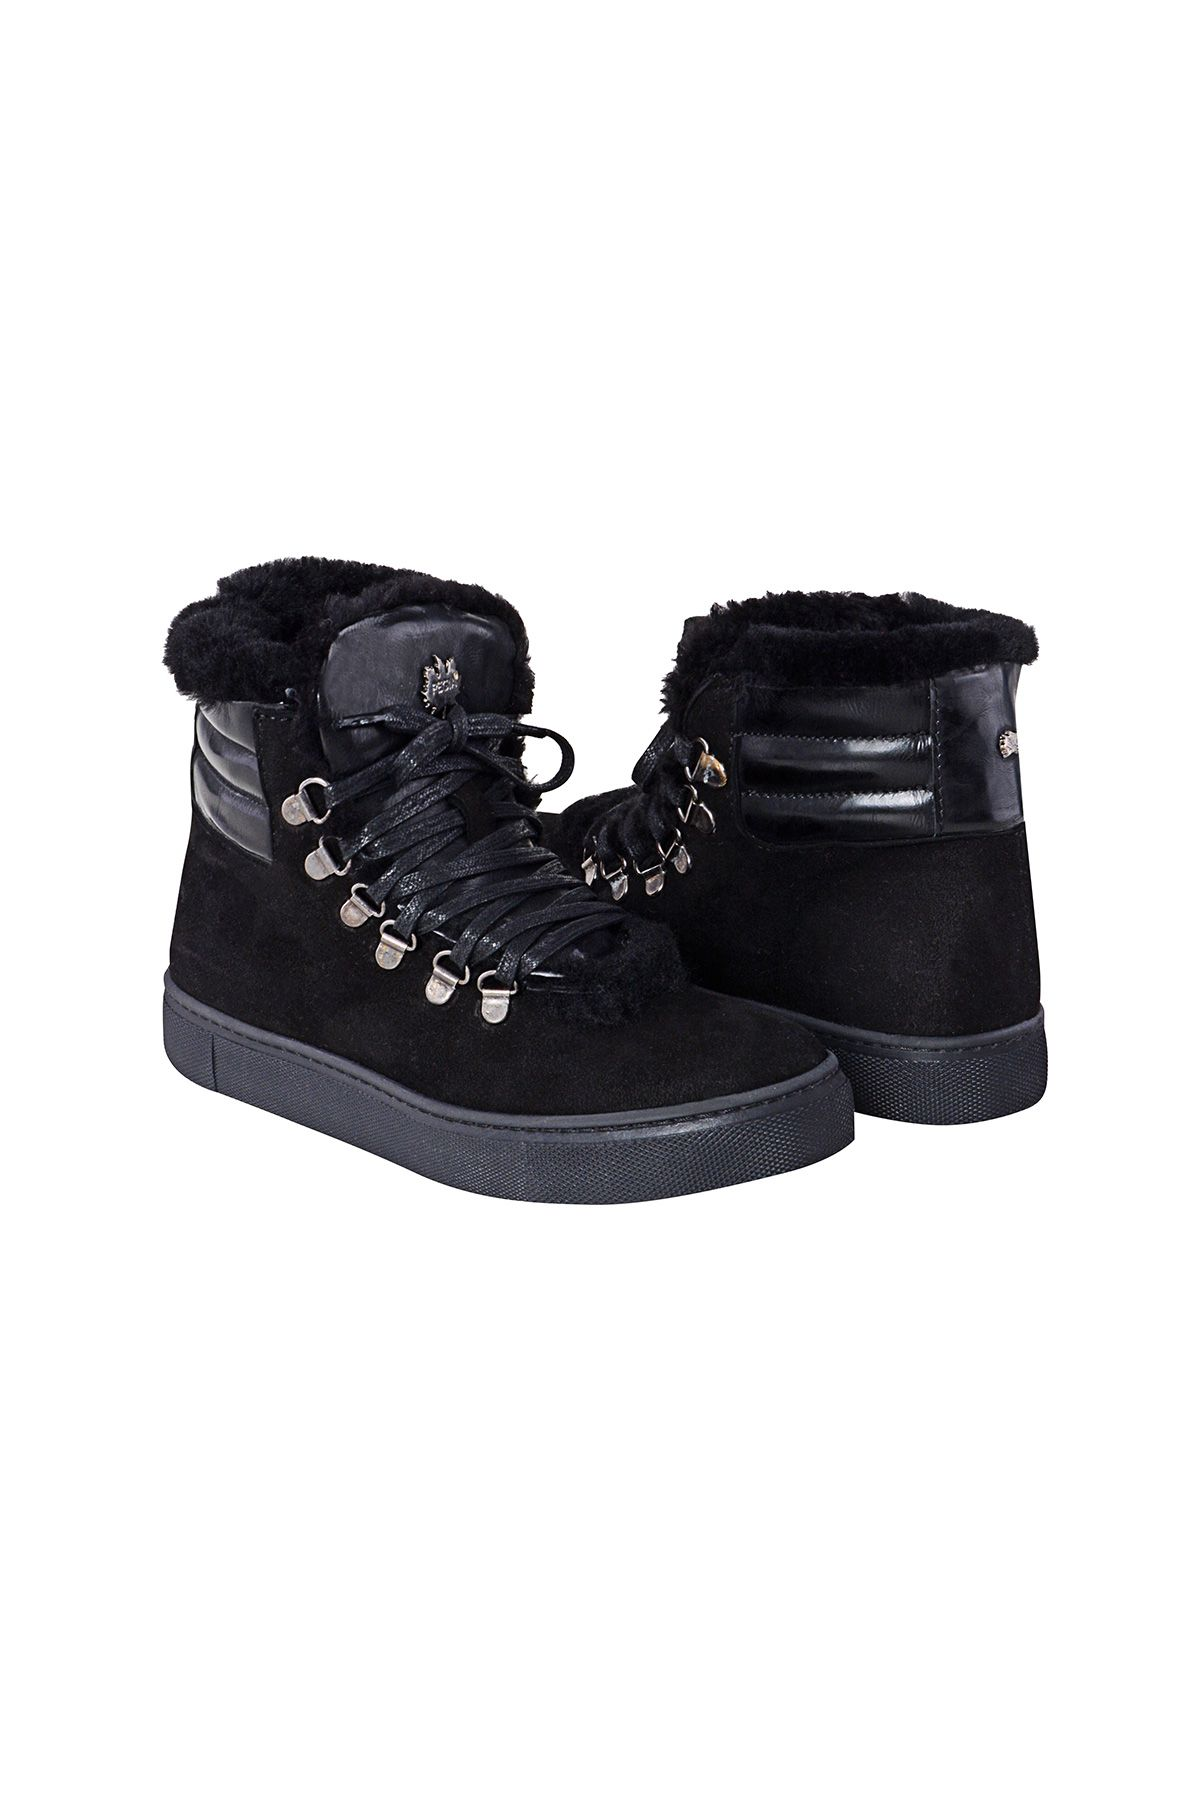 Pegia Genuine Suede & Shearling Laced Women's Boots 197013 Black